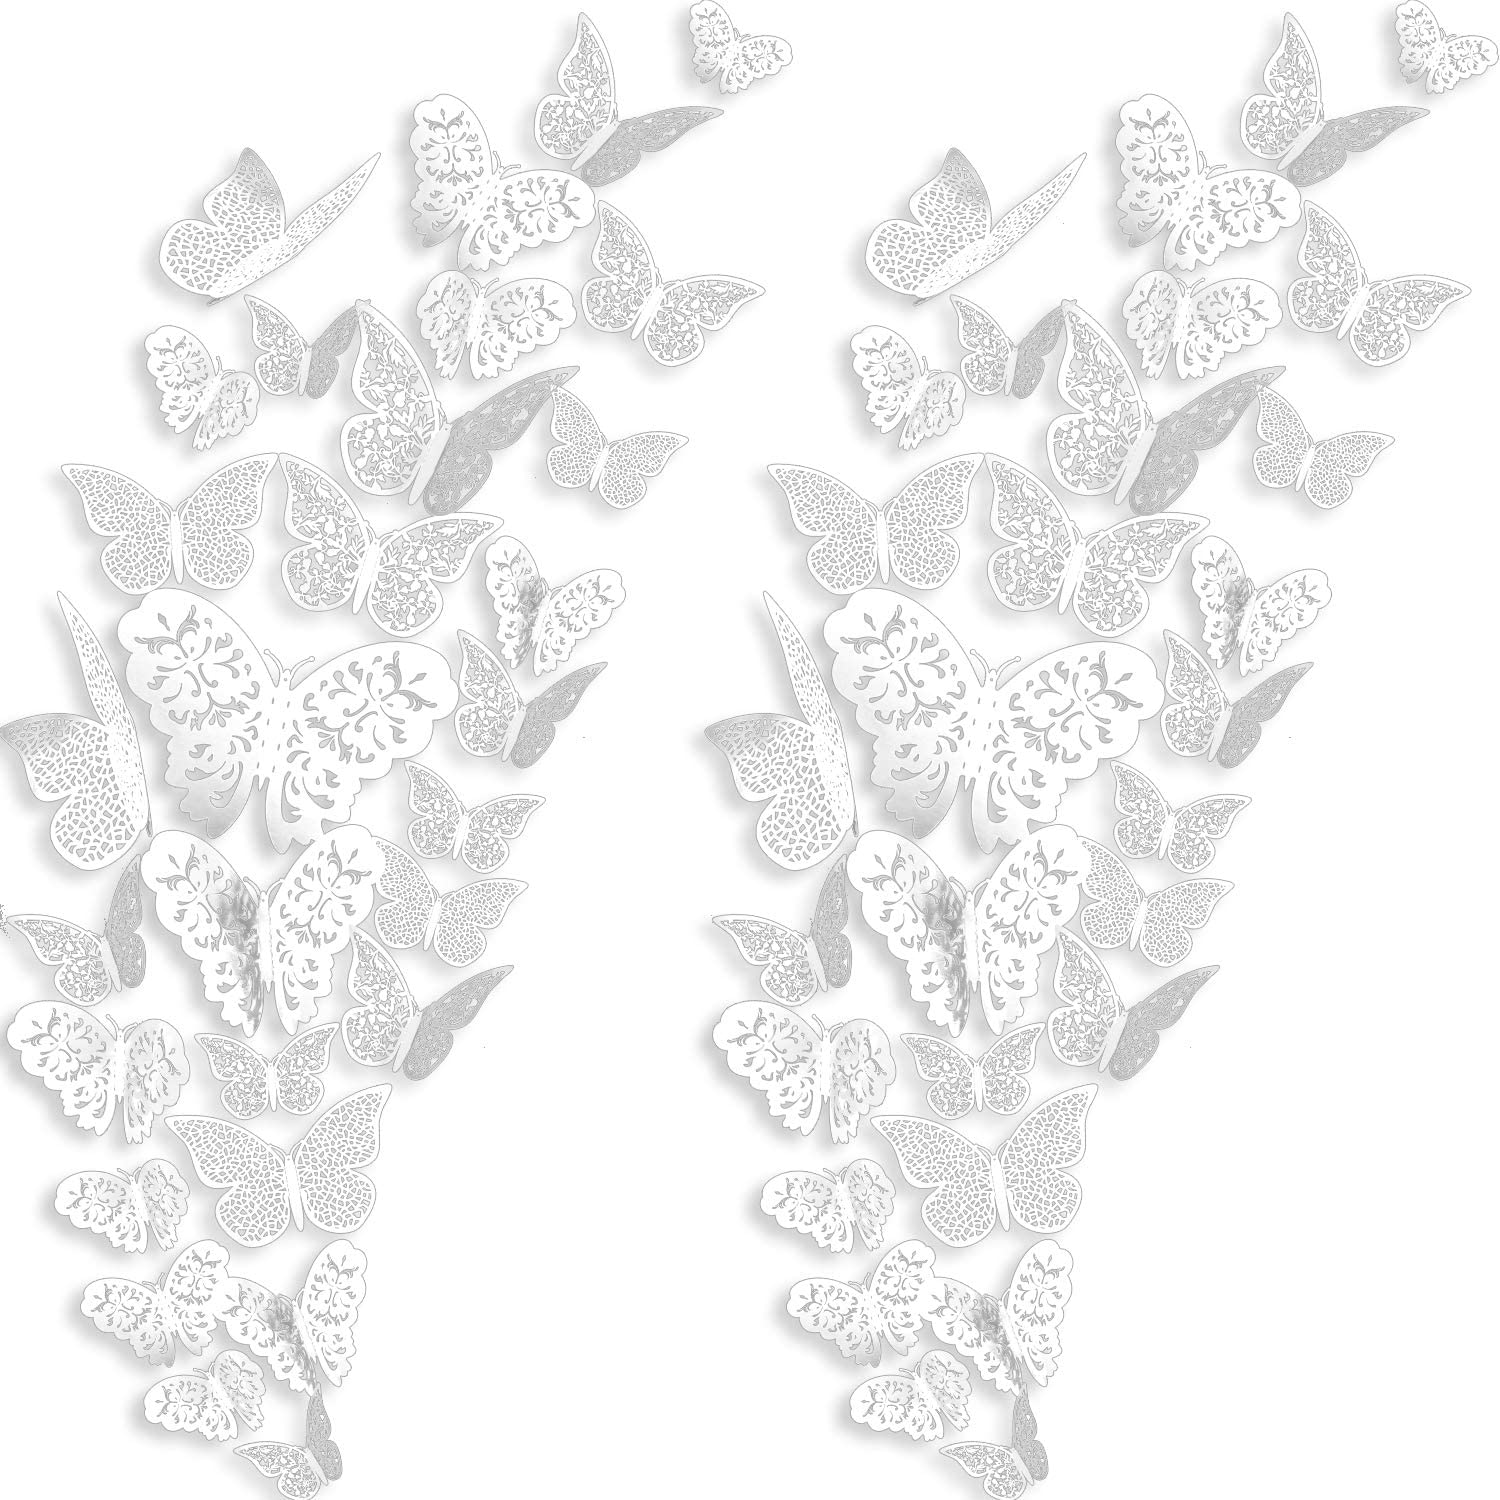 72 Pieces 3D Butterfly Wall Decals Sticker Wall Decal Decor Art Decorations Sticker Set 3 Sizes for Room Home Nursery Classroom Offices Girl Boy Bedroom Bathroom Living Room Decor (White)